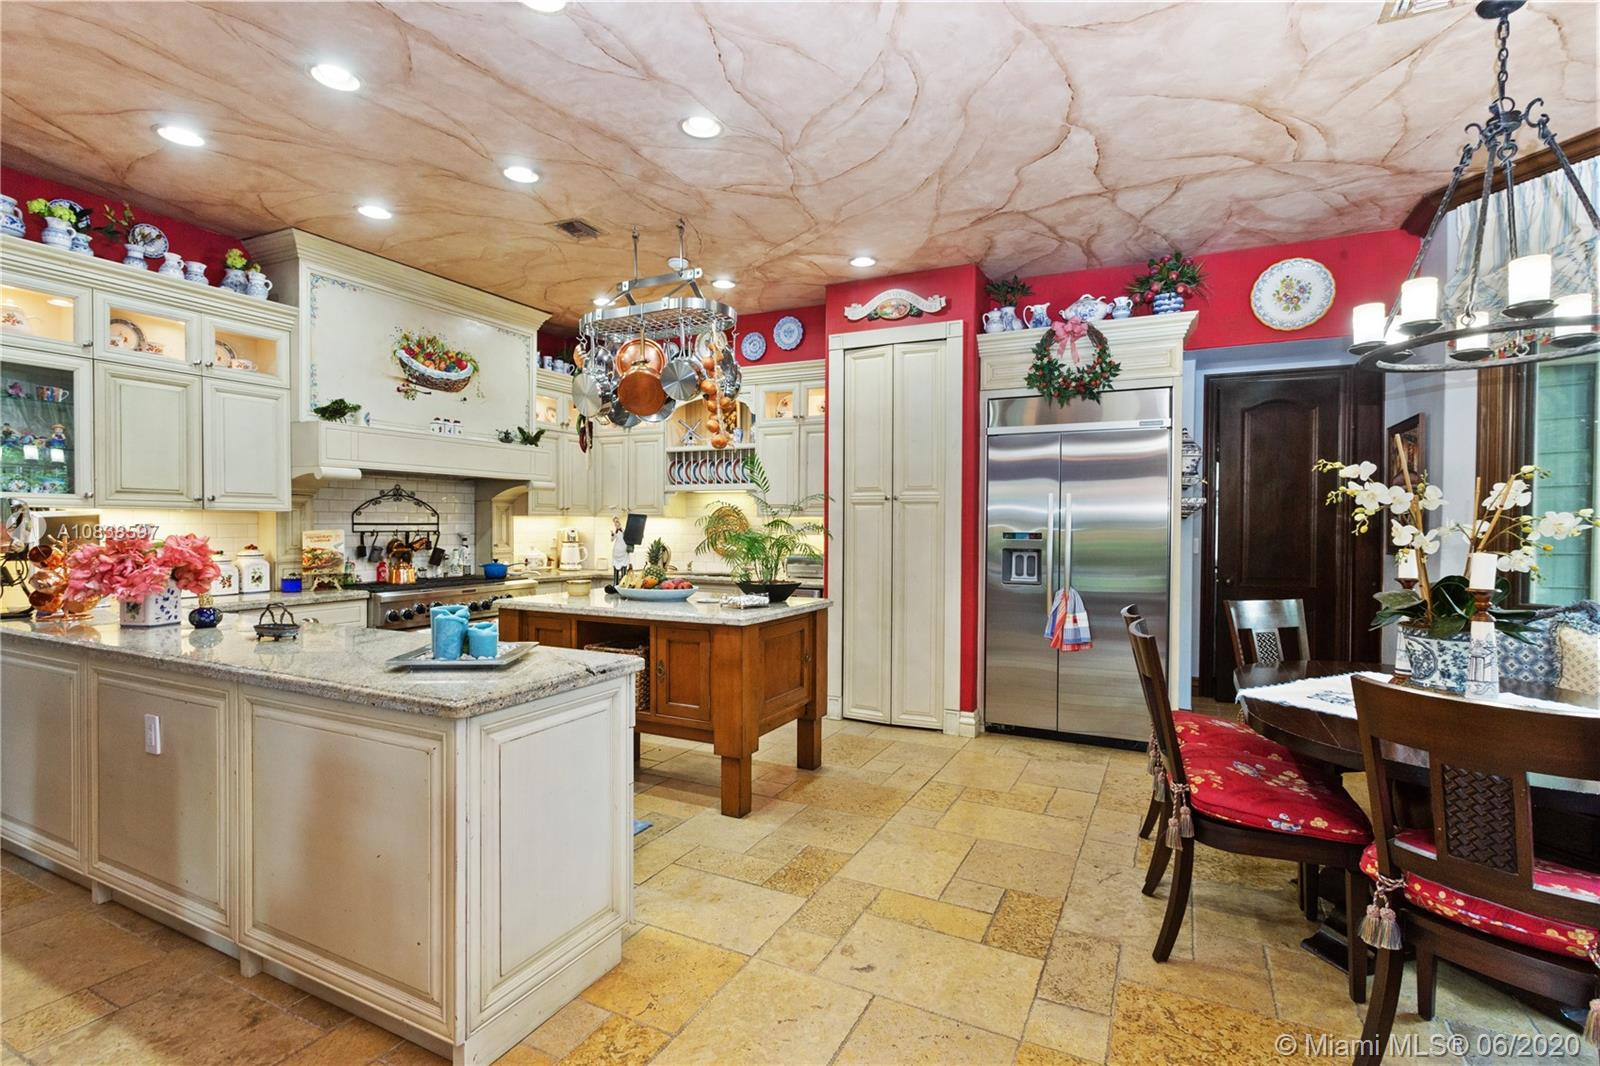 17541 SW 73rd Ct, Palmetto Bay, Florida 33157, 6 Bedrooms Bedrooms, ,4 BathroomsBathrooms,Residential,For Sale,17541 SW 73rd Ct,A10838597